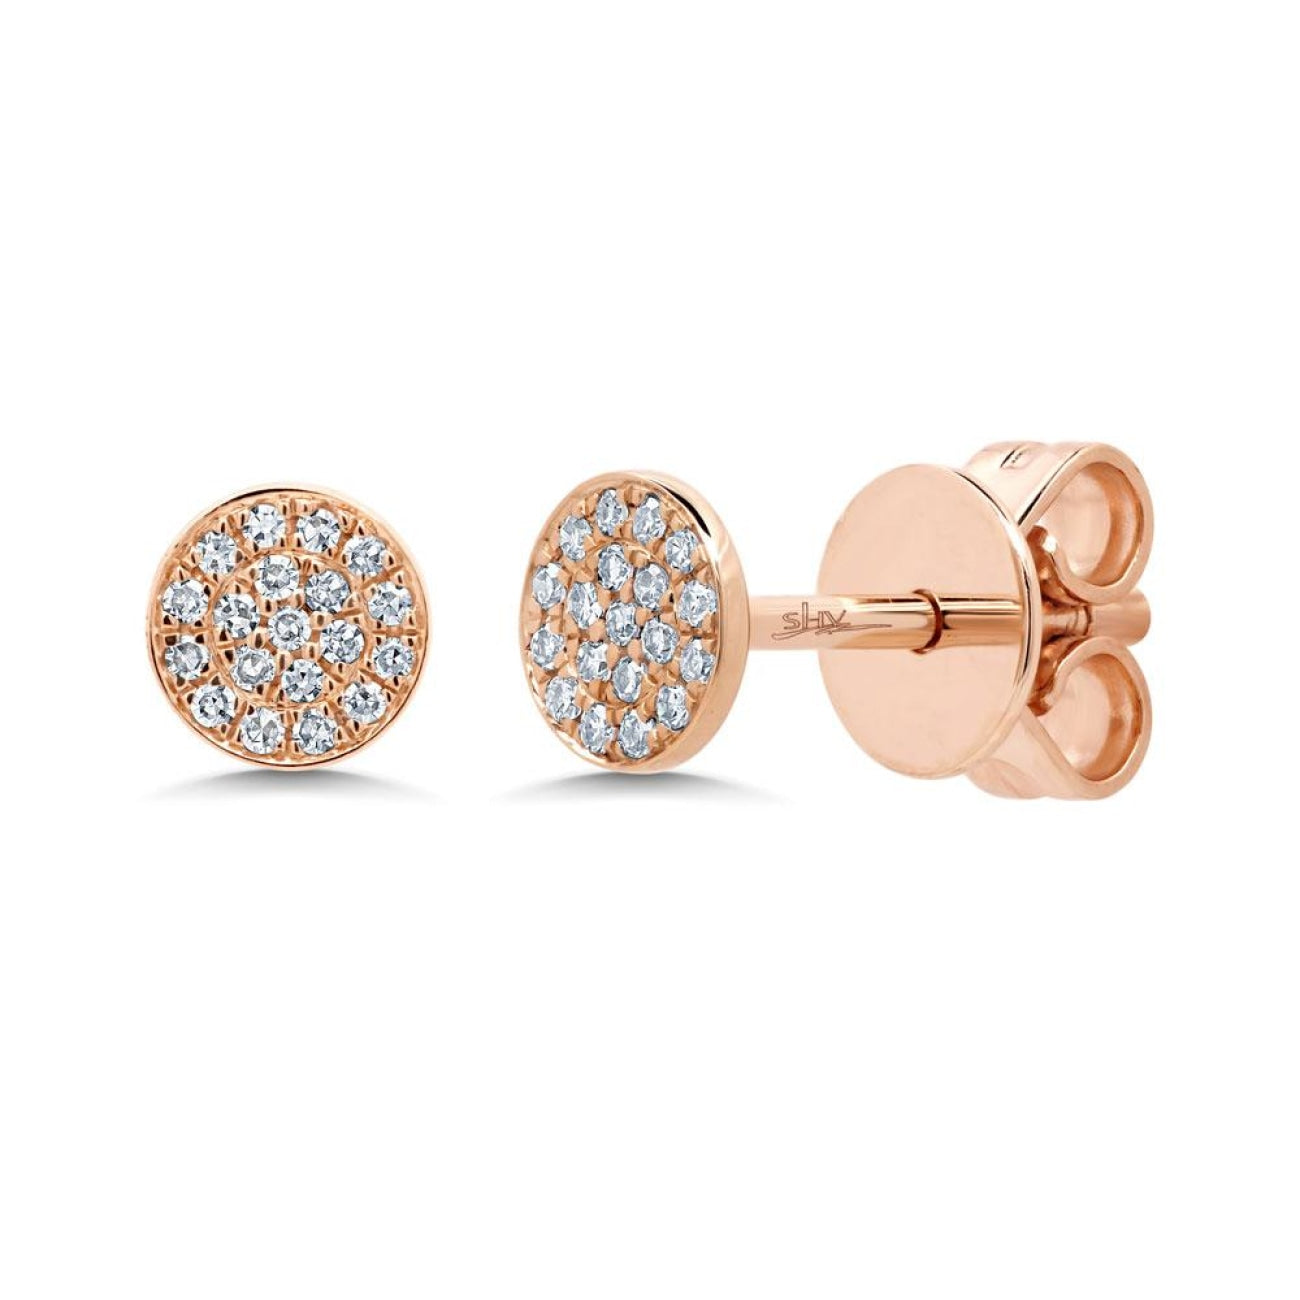 Shy Creation Jewelry - Rose Gold Diamond Pave Stud Earring | Manfredi Jewels